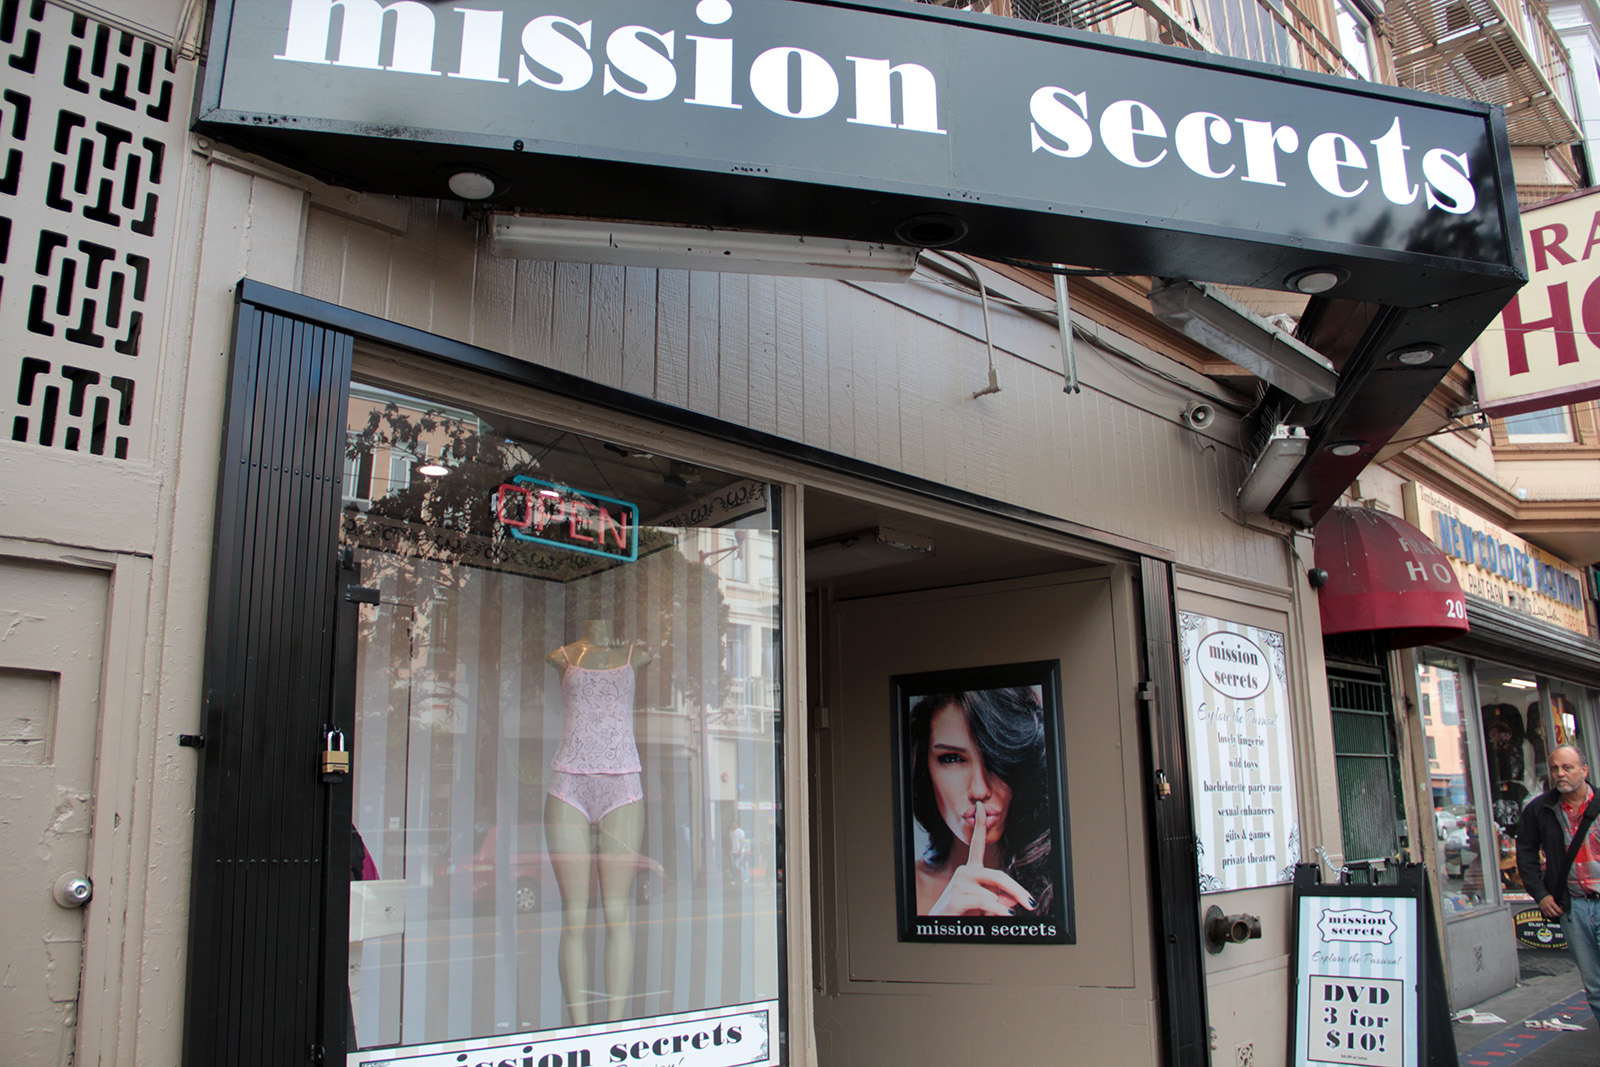 16th and Mission Porn Shop Tries to Go Upscale